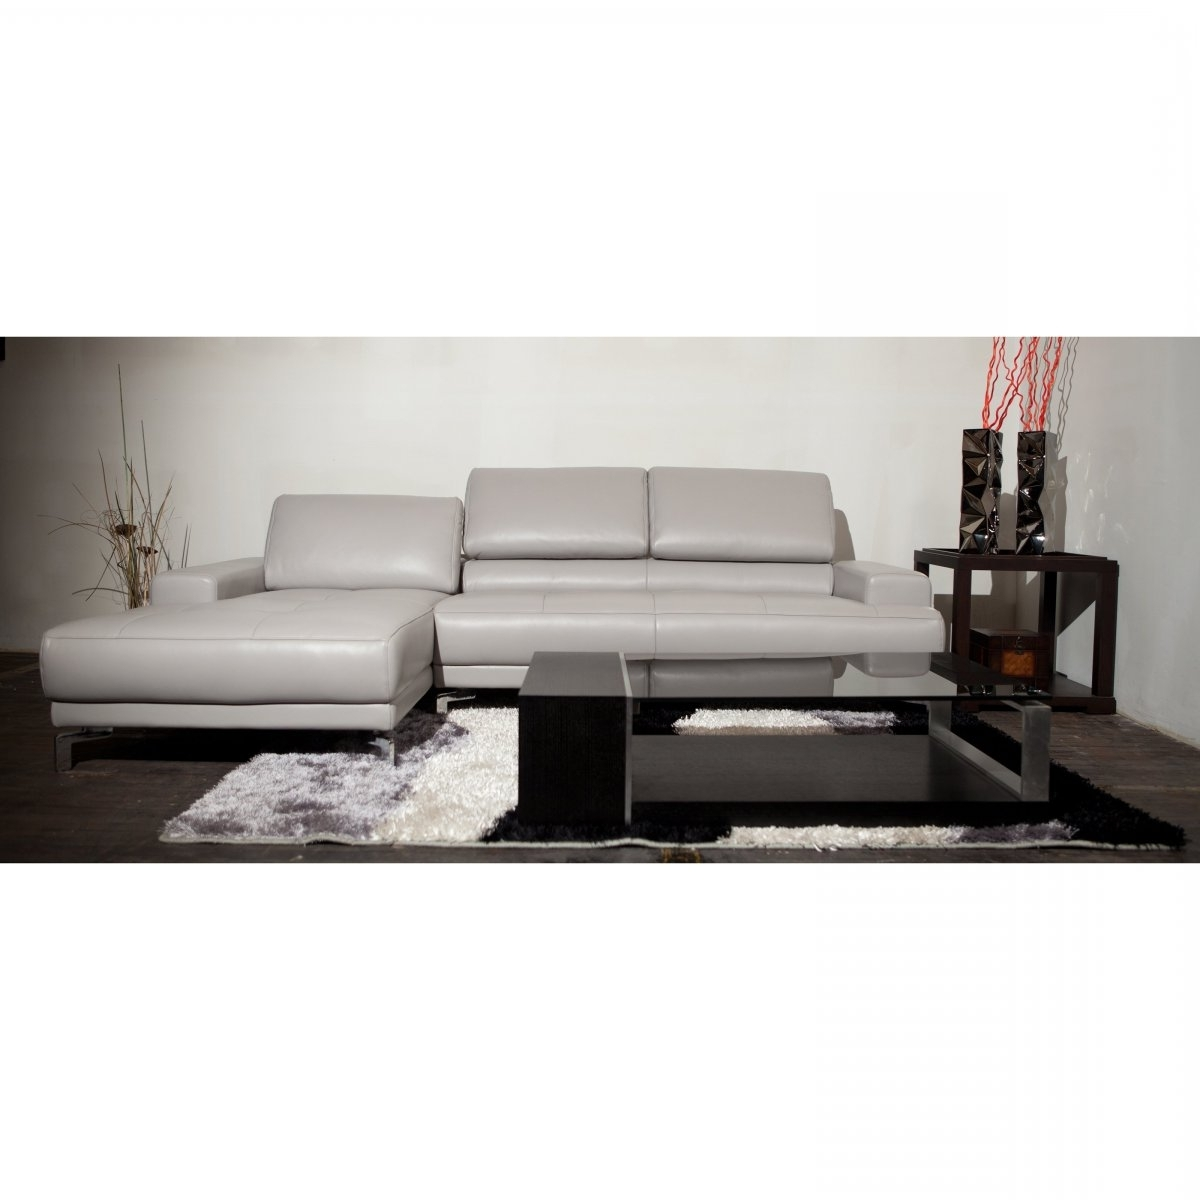 Most Up To Date Kijiji London Sectional Sofas Pertaining To Furniture : Yellow Corner Couch Recliner For Nursery Sectional (View 9 of 15)